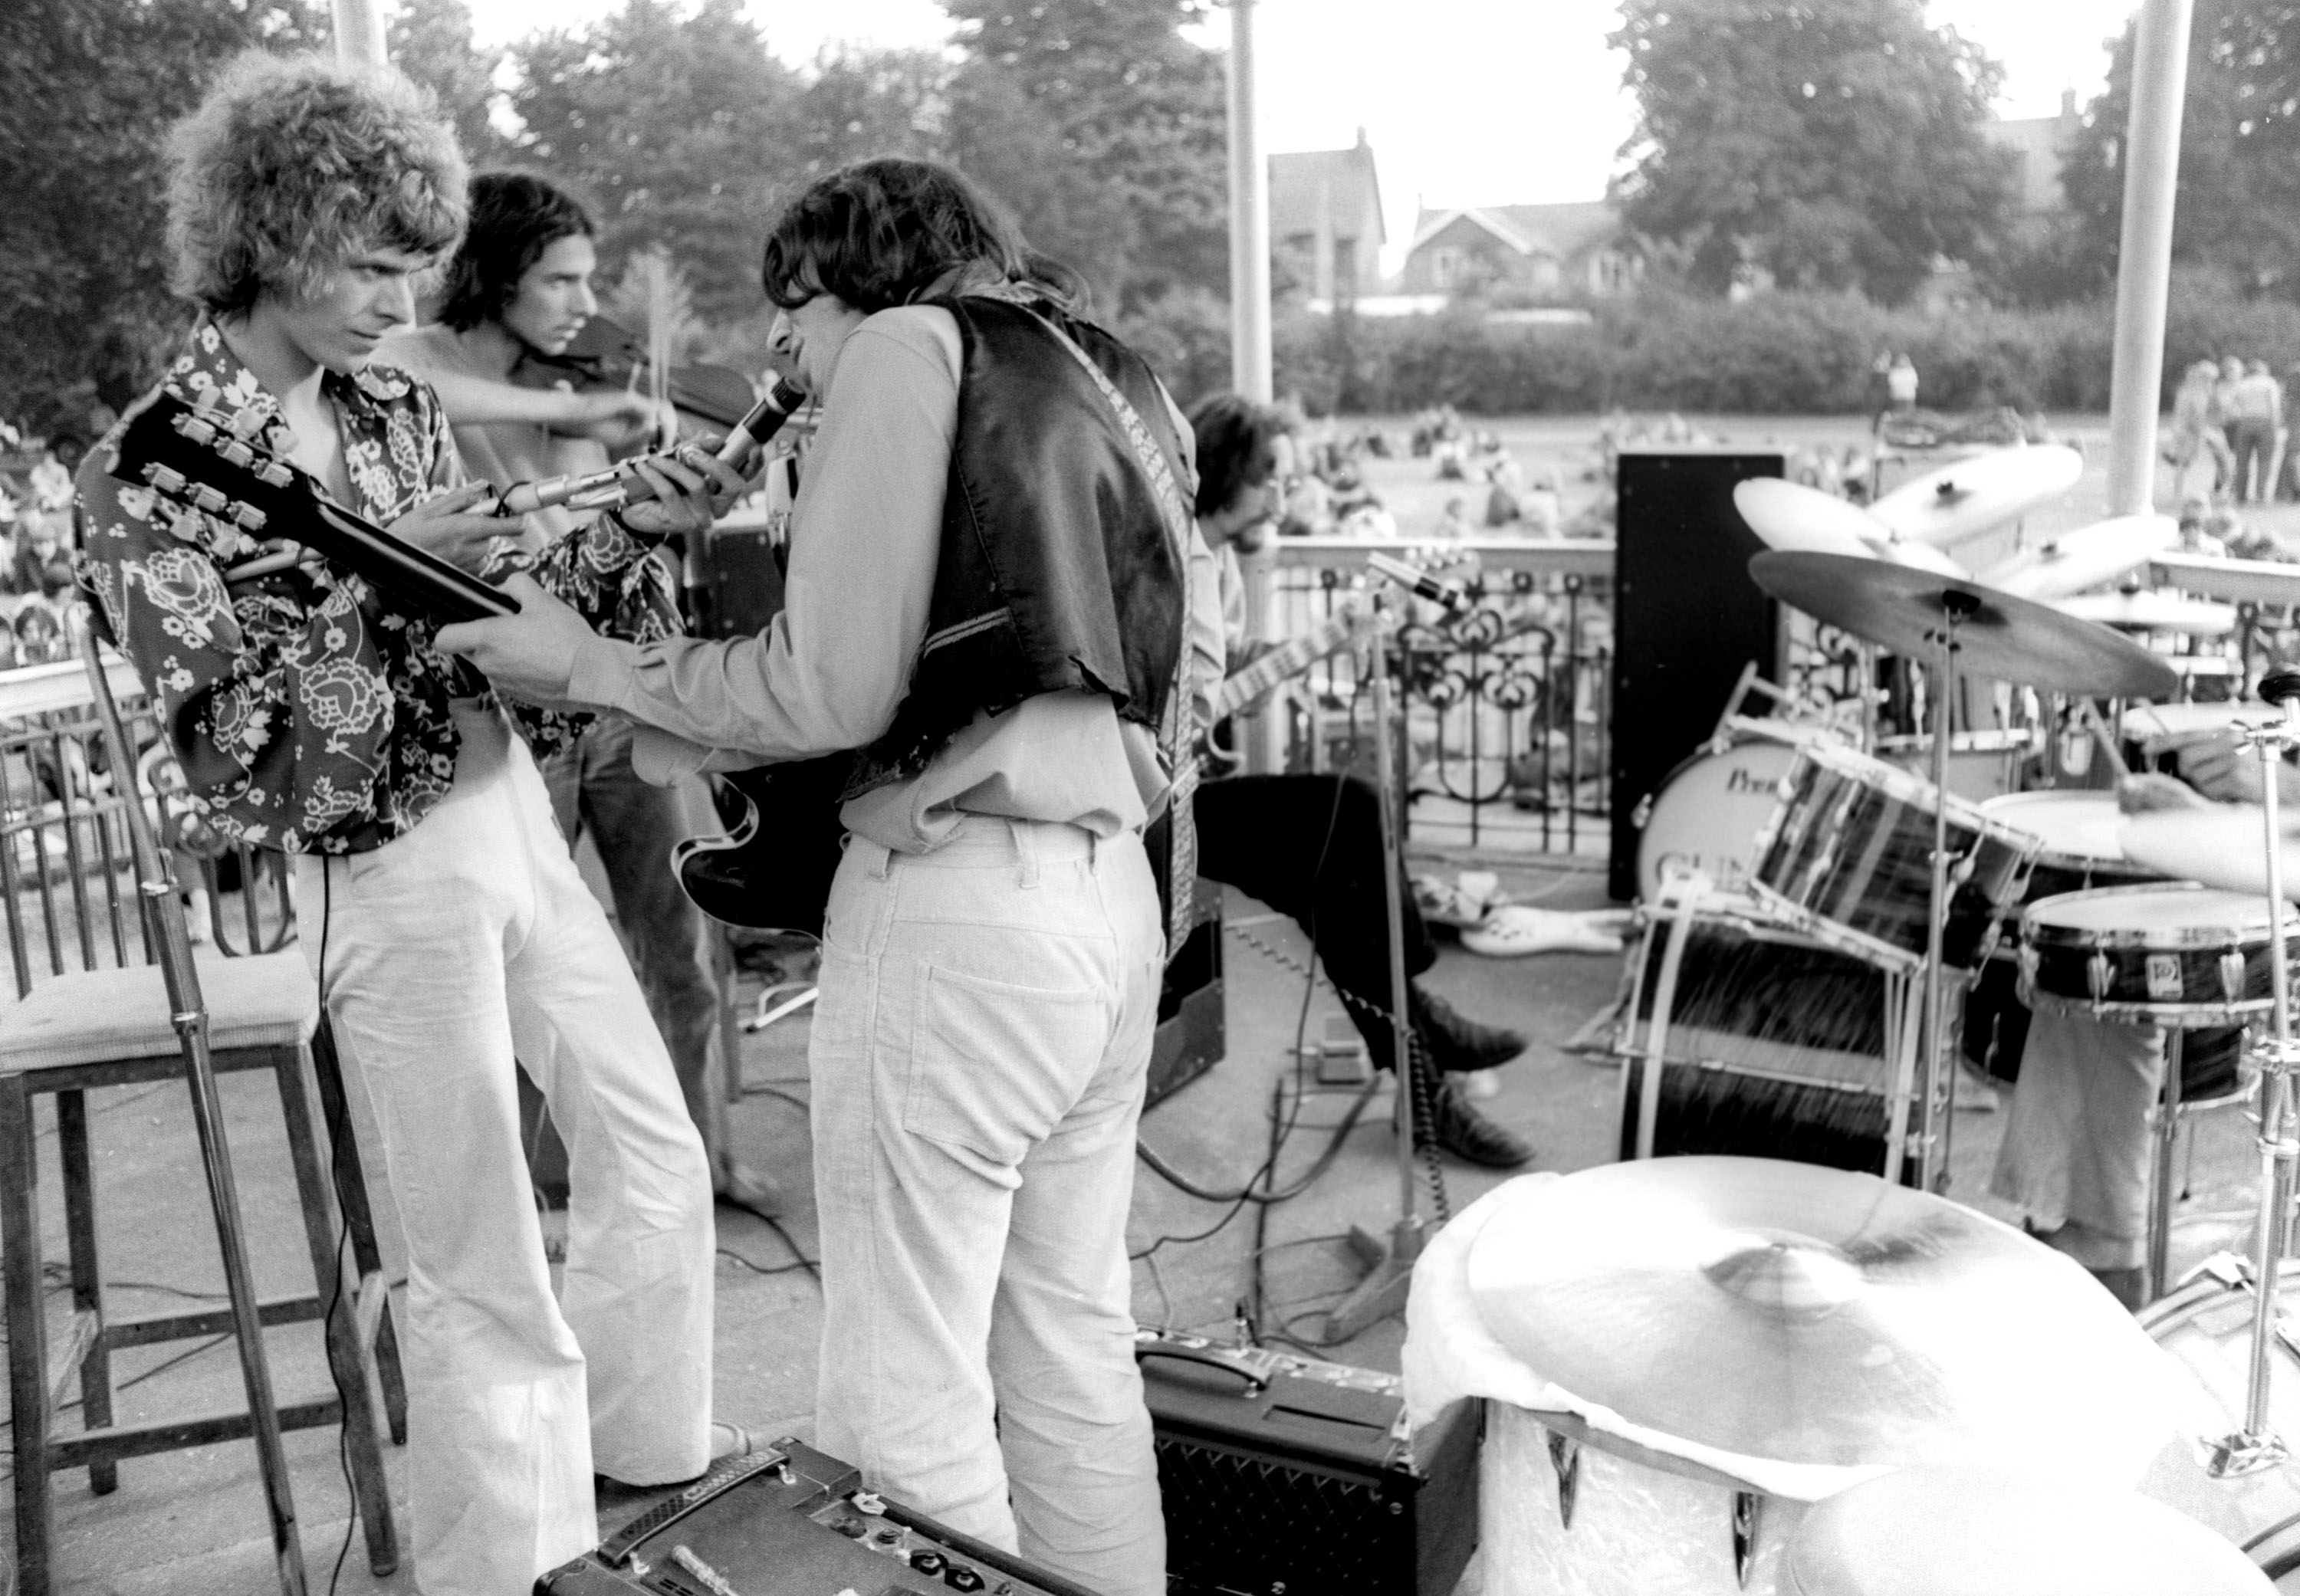 David Bowie playing with other musicians at the Beckenham bandstand on August 16, 1969